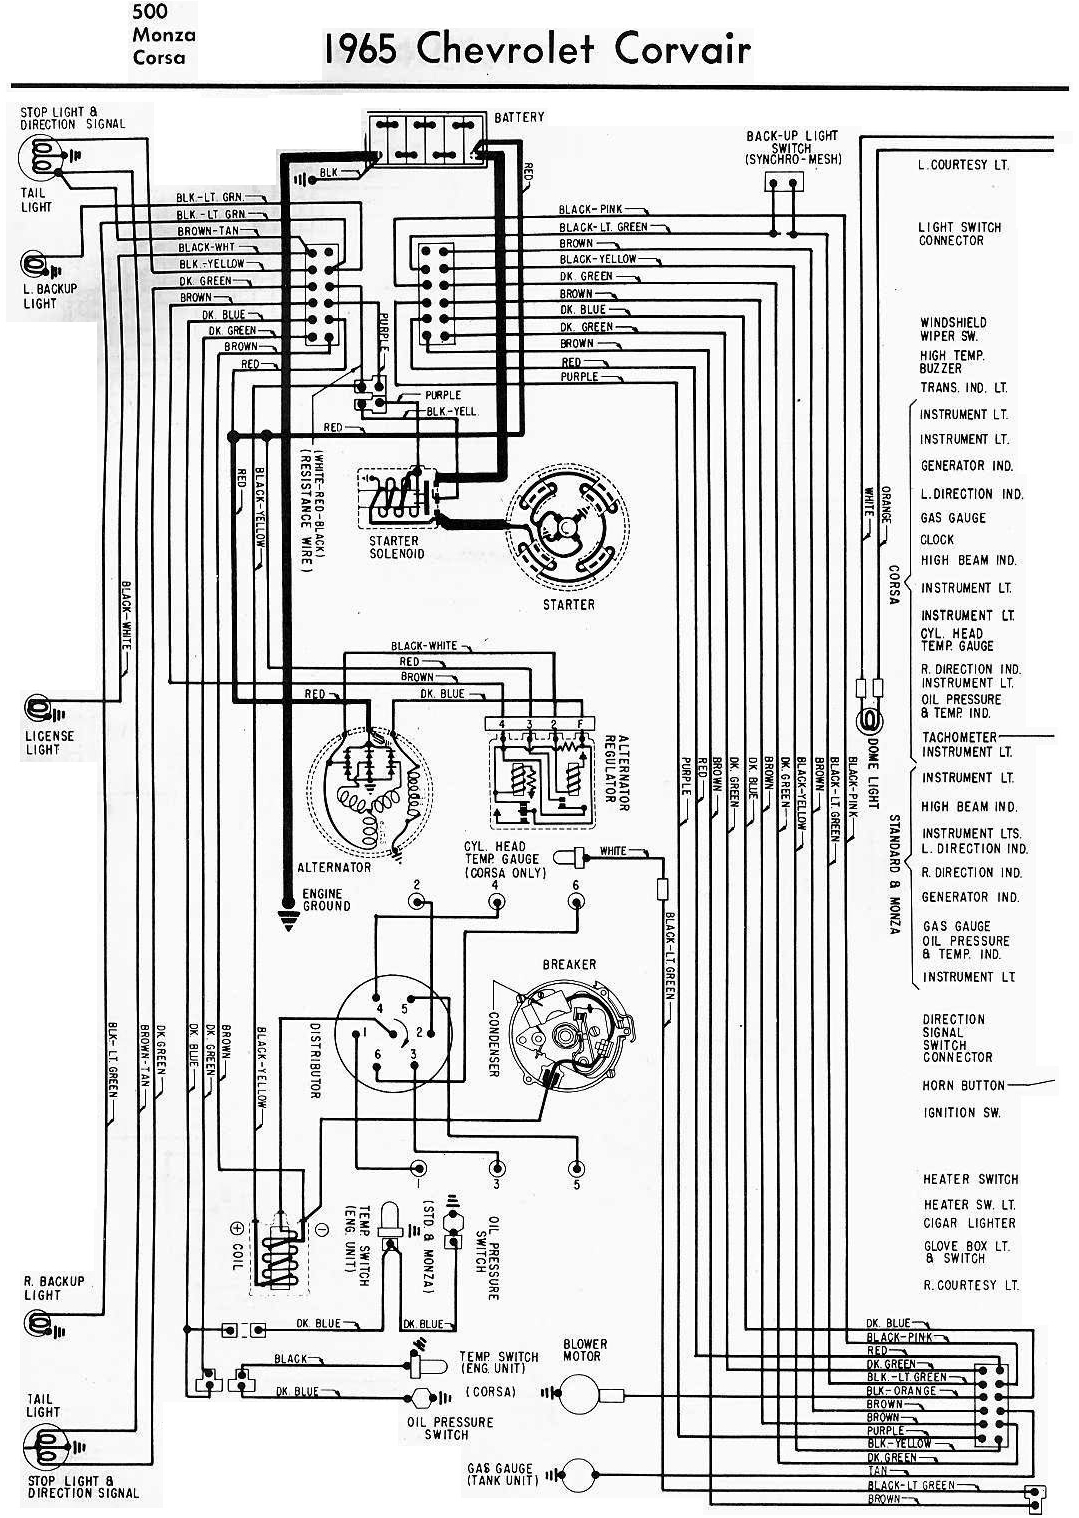 1965 corvair wiring diagram wire center u2022 rh caribcar co 1966 Corvair V8 Conversion 1970 Chevrolet Corvair